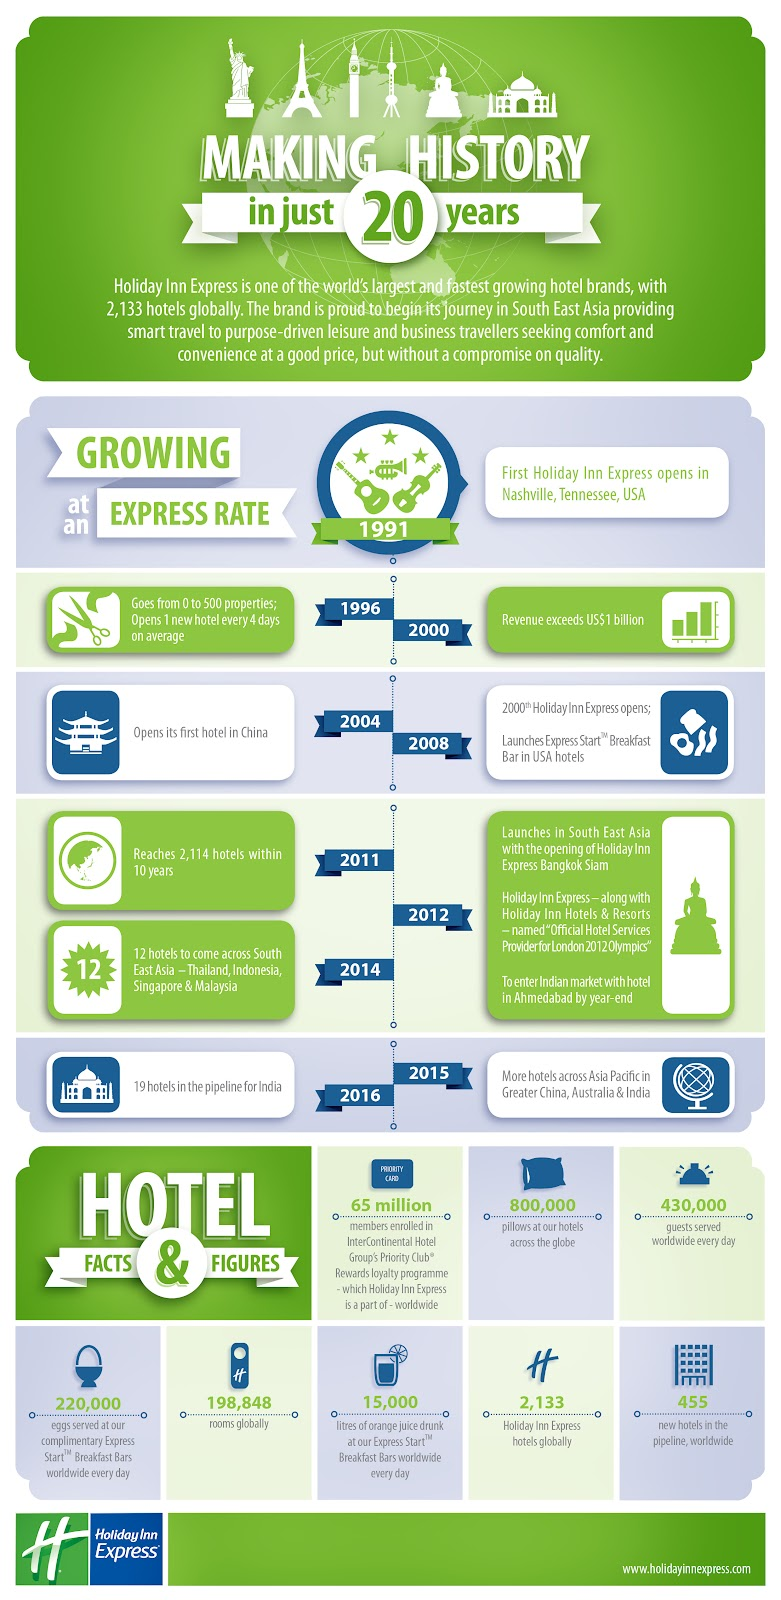 Holiday Inn Express Travel Hotel Infographic